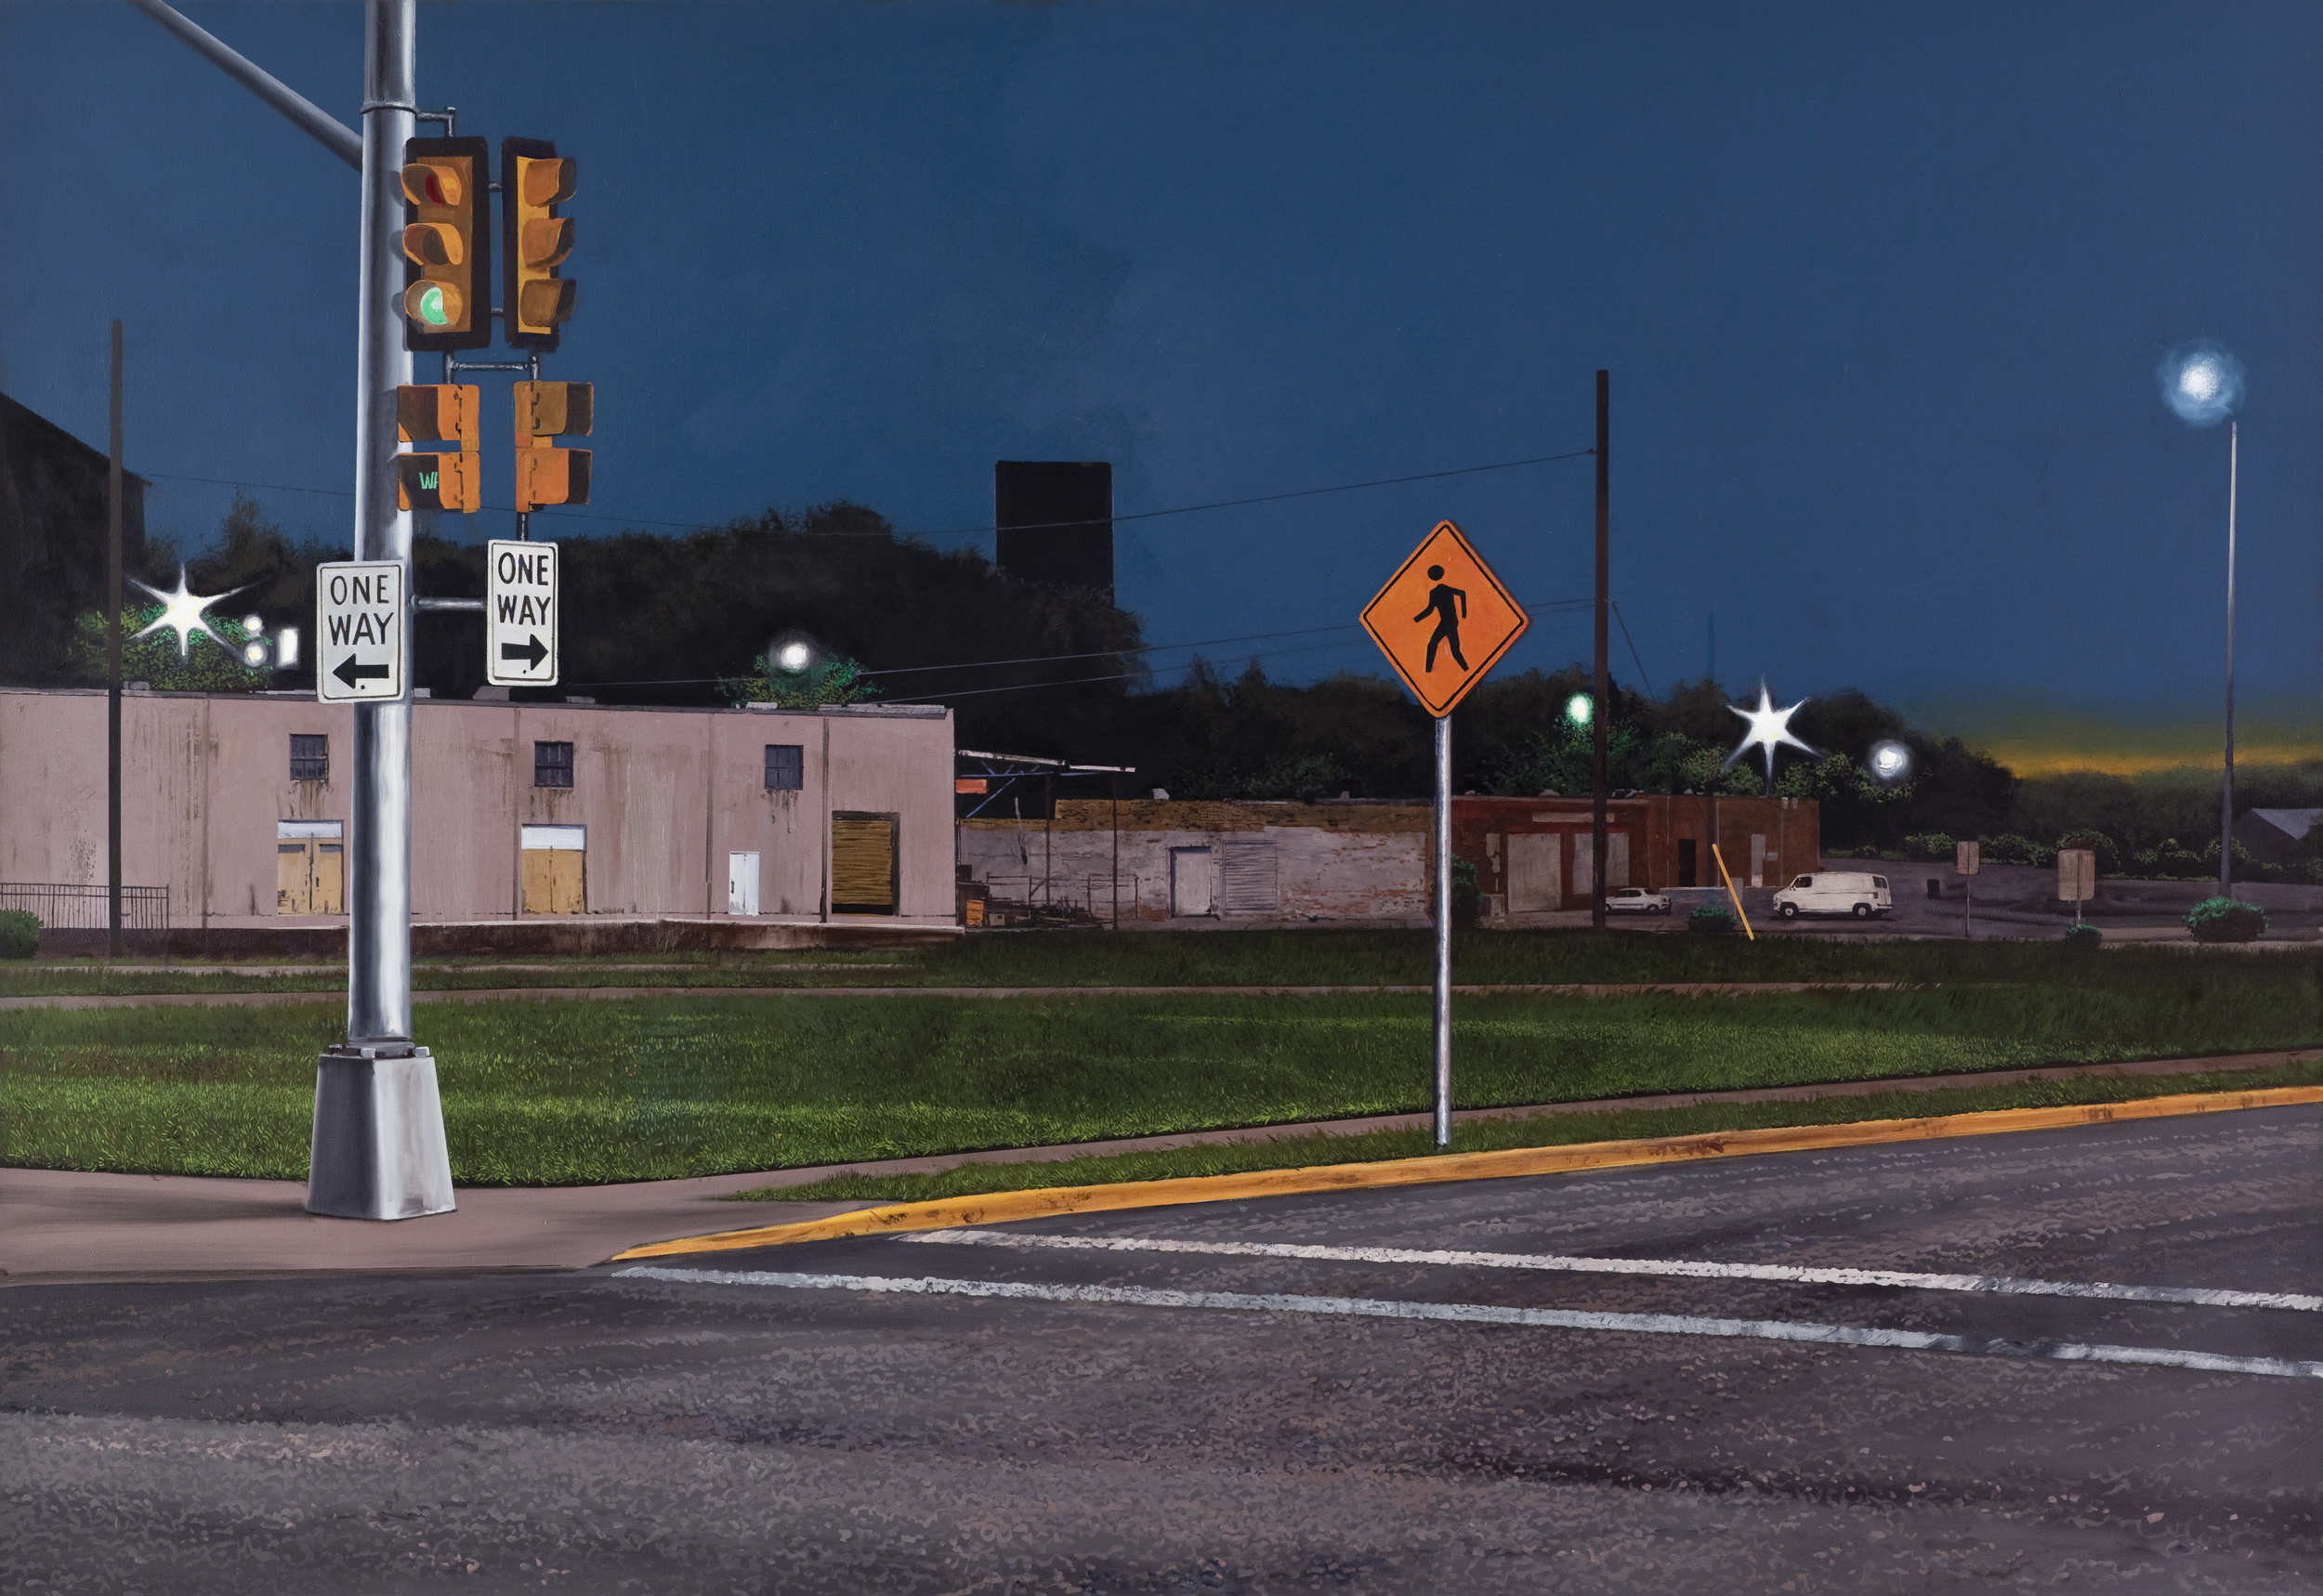 "Daniel Blagg,  Night Walker,  oil on canvas, 60 x 90"" $16,000.  Contact Artspace111 to purchase."